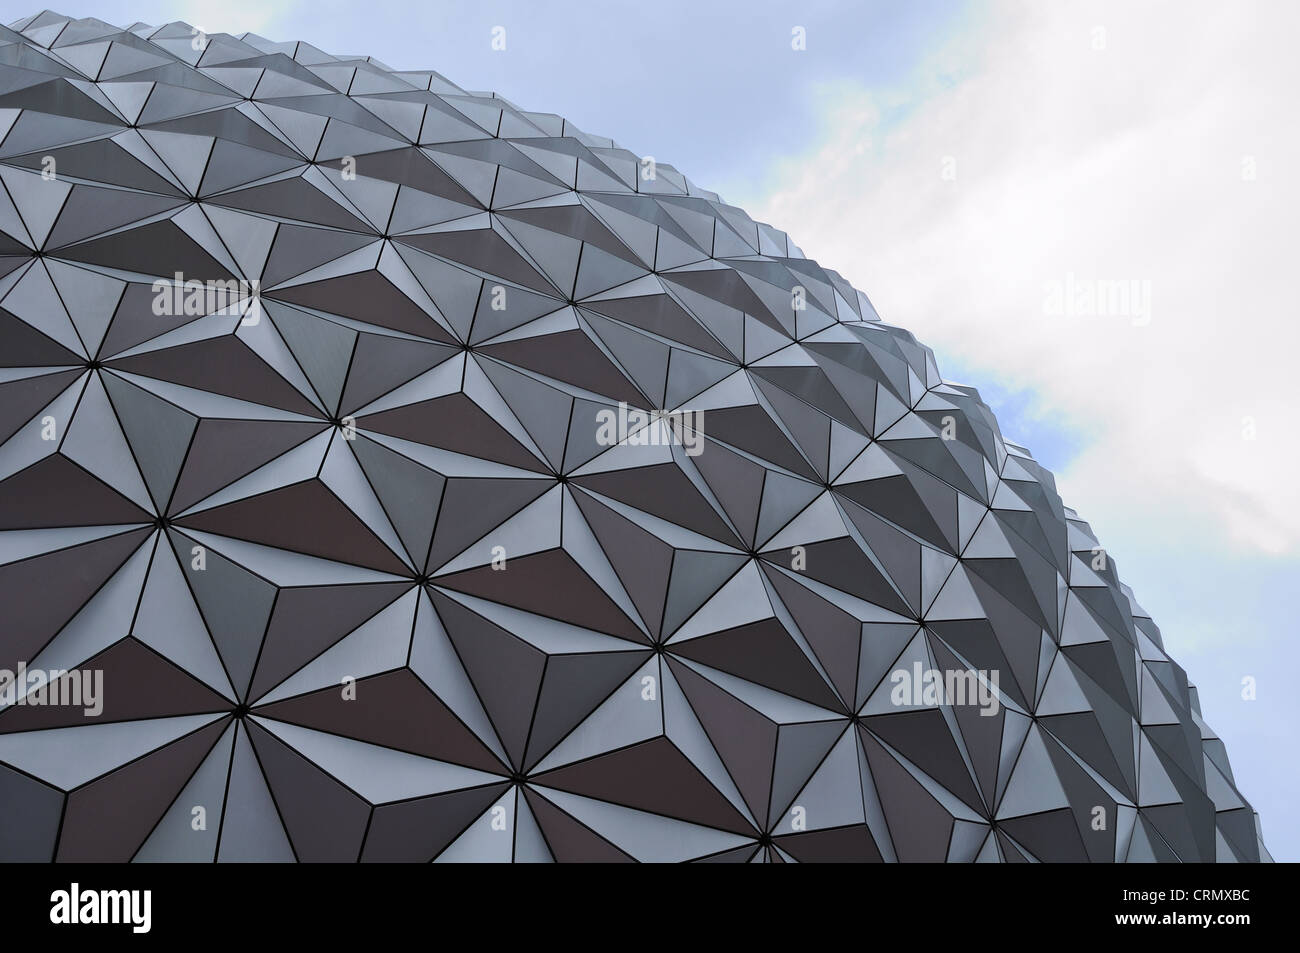 The Epcot polyhedron isolated against a cloudy blue sky. - Stock Image